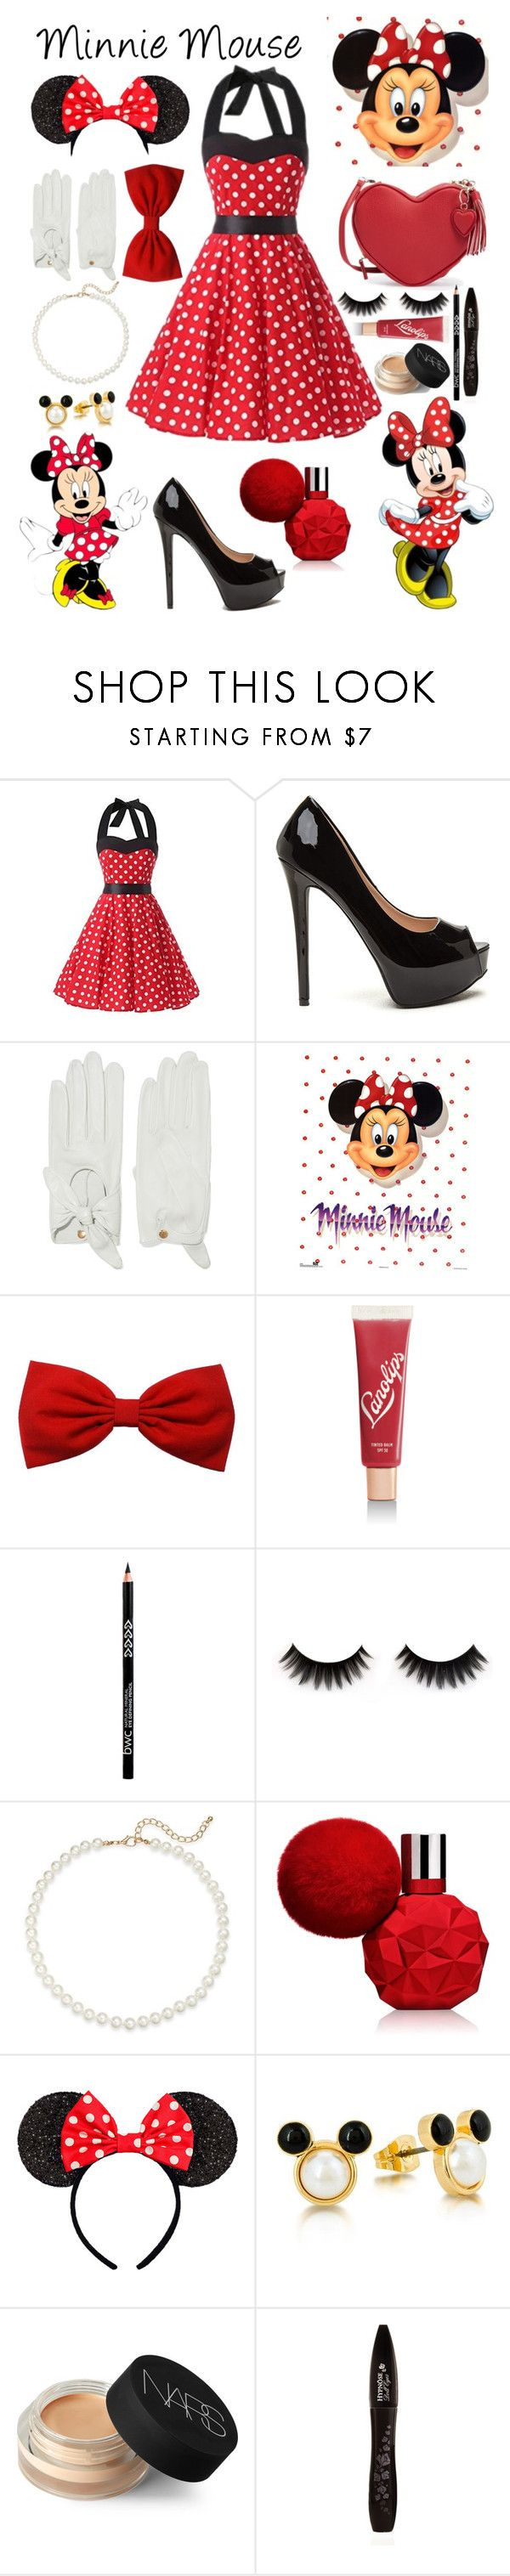 """Minnie Mouse"" by lexisamskywalker on Polyvore featuring Causse, Lano, Saks Fifth Avenue, Disney, NARS Cosmetics and Lancôme"